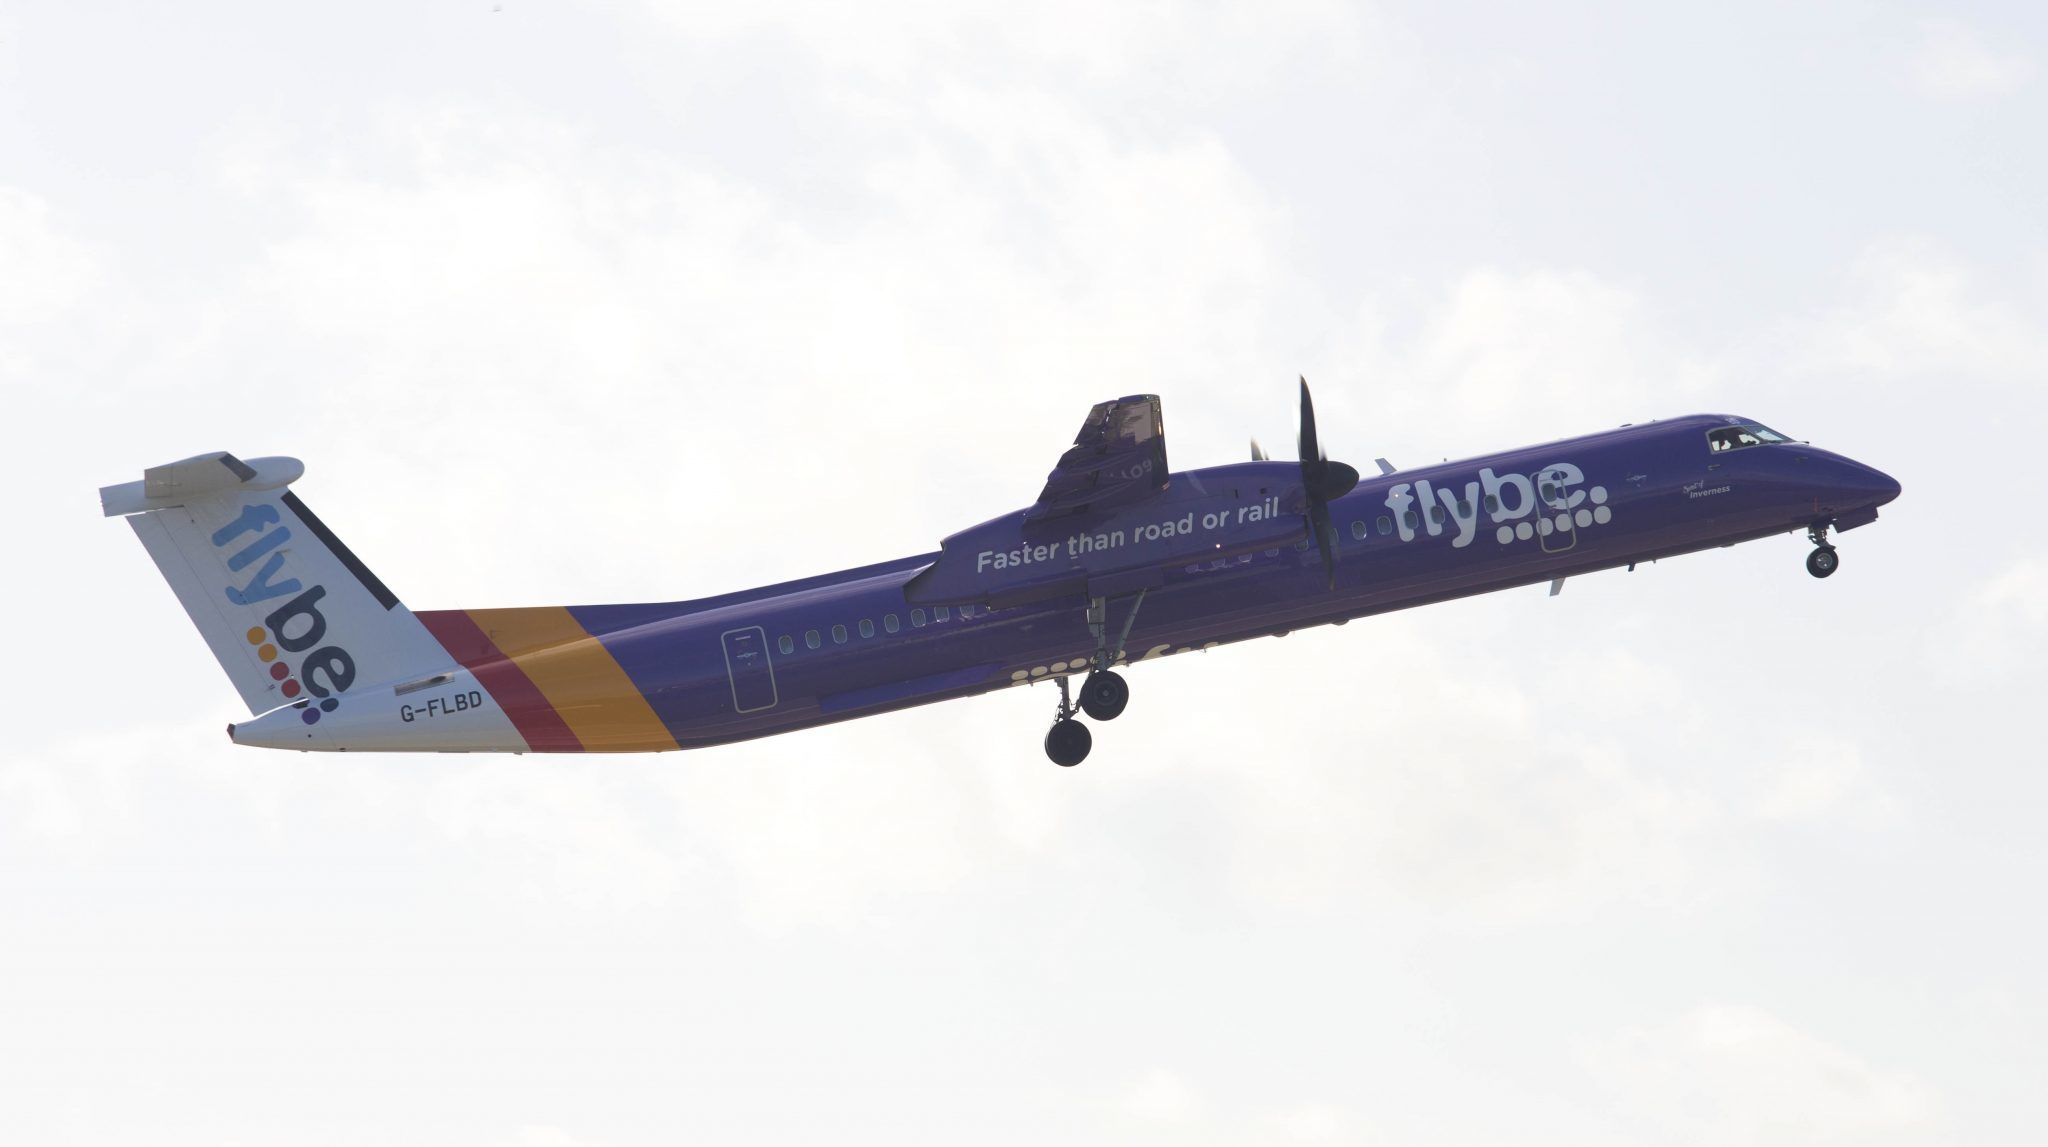 Flybe is best in noise and emissions performance at Heathrow